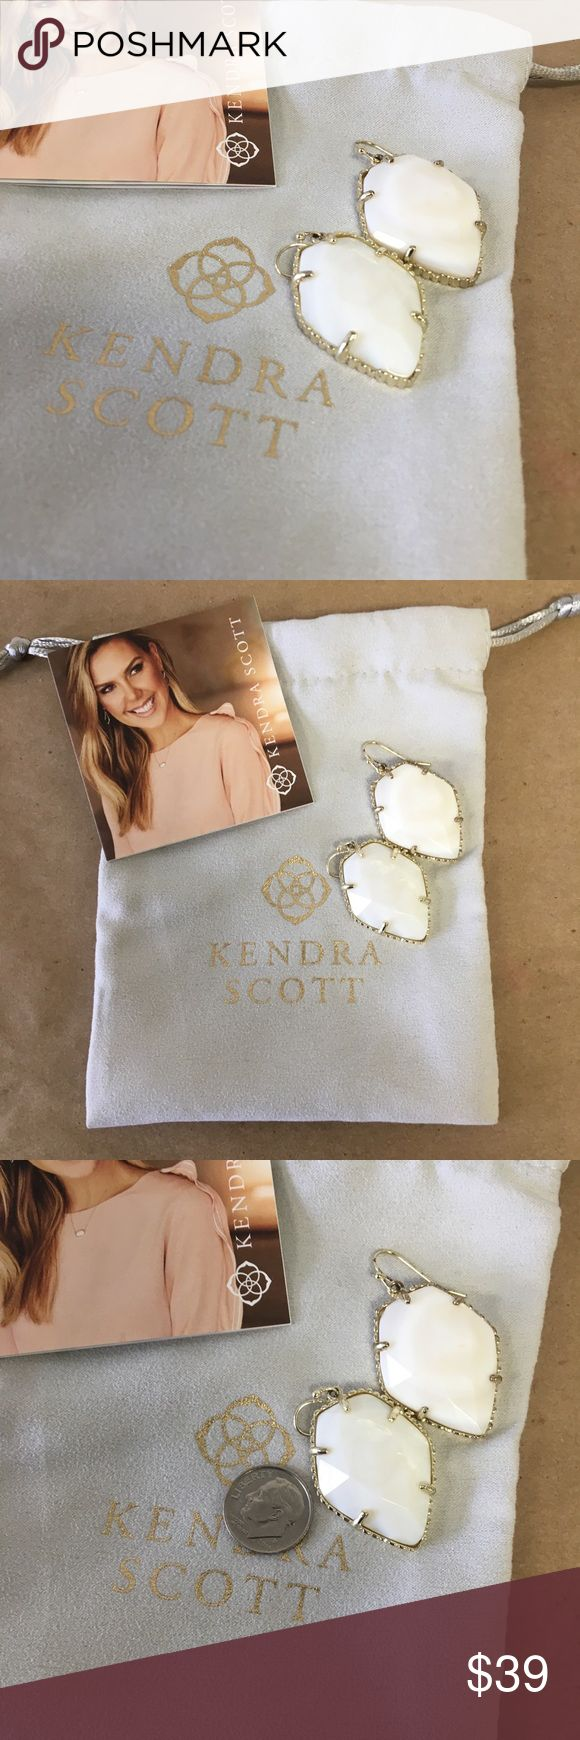 Kendra Scott Earrings in Gold & White! Kendra Scott Earrings in Gold & White! Inventory #  3245-306 Everything we sell is 100% guaranteed authentic! We list dozens of items every day, so check our other listings out! We are Meta Exchange, a resale store in Baton Rouge, LA! Sorry, no trades. REASONABLE offers will be considered. We ship same/next day. Thanks! Follow us: FB metaexchange  IG meta225 Kendra Scott Jewelry Earrings